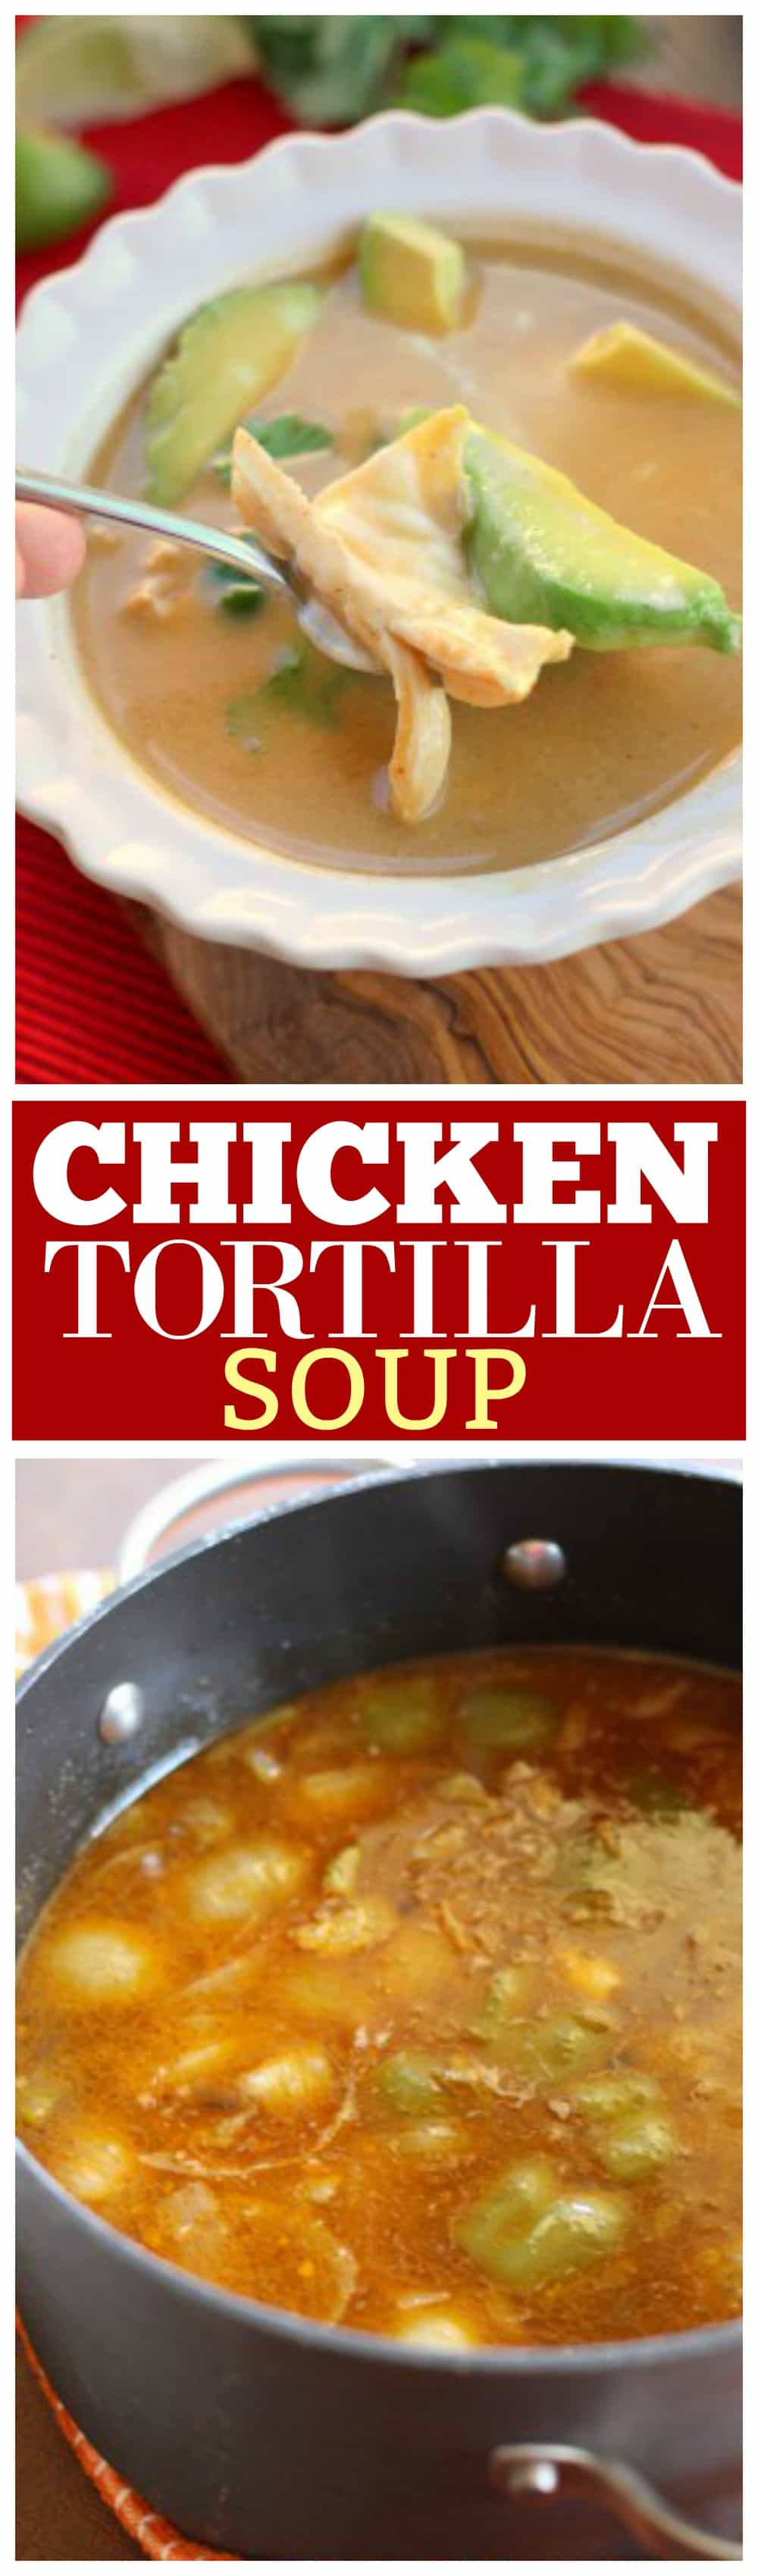 Chicken Tortilla Soup - A knock-off from the famous soup at Tommy Bahamas. We were licking our bowls. {The Girl Who Ate Everything}